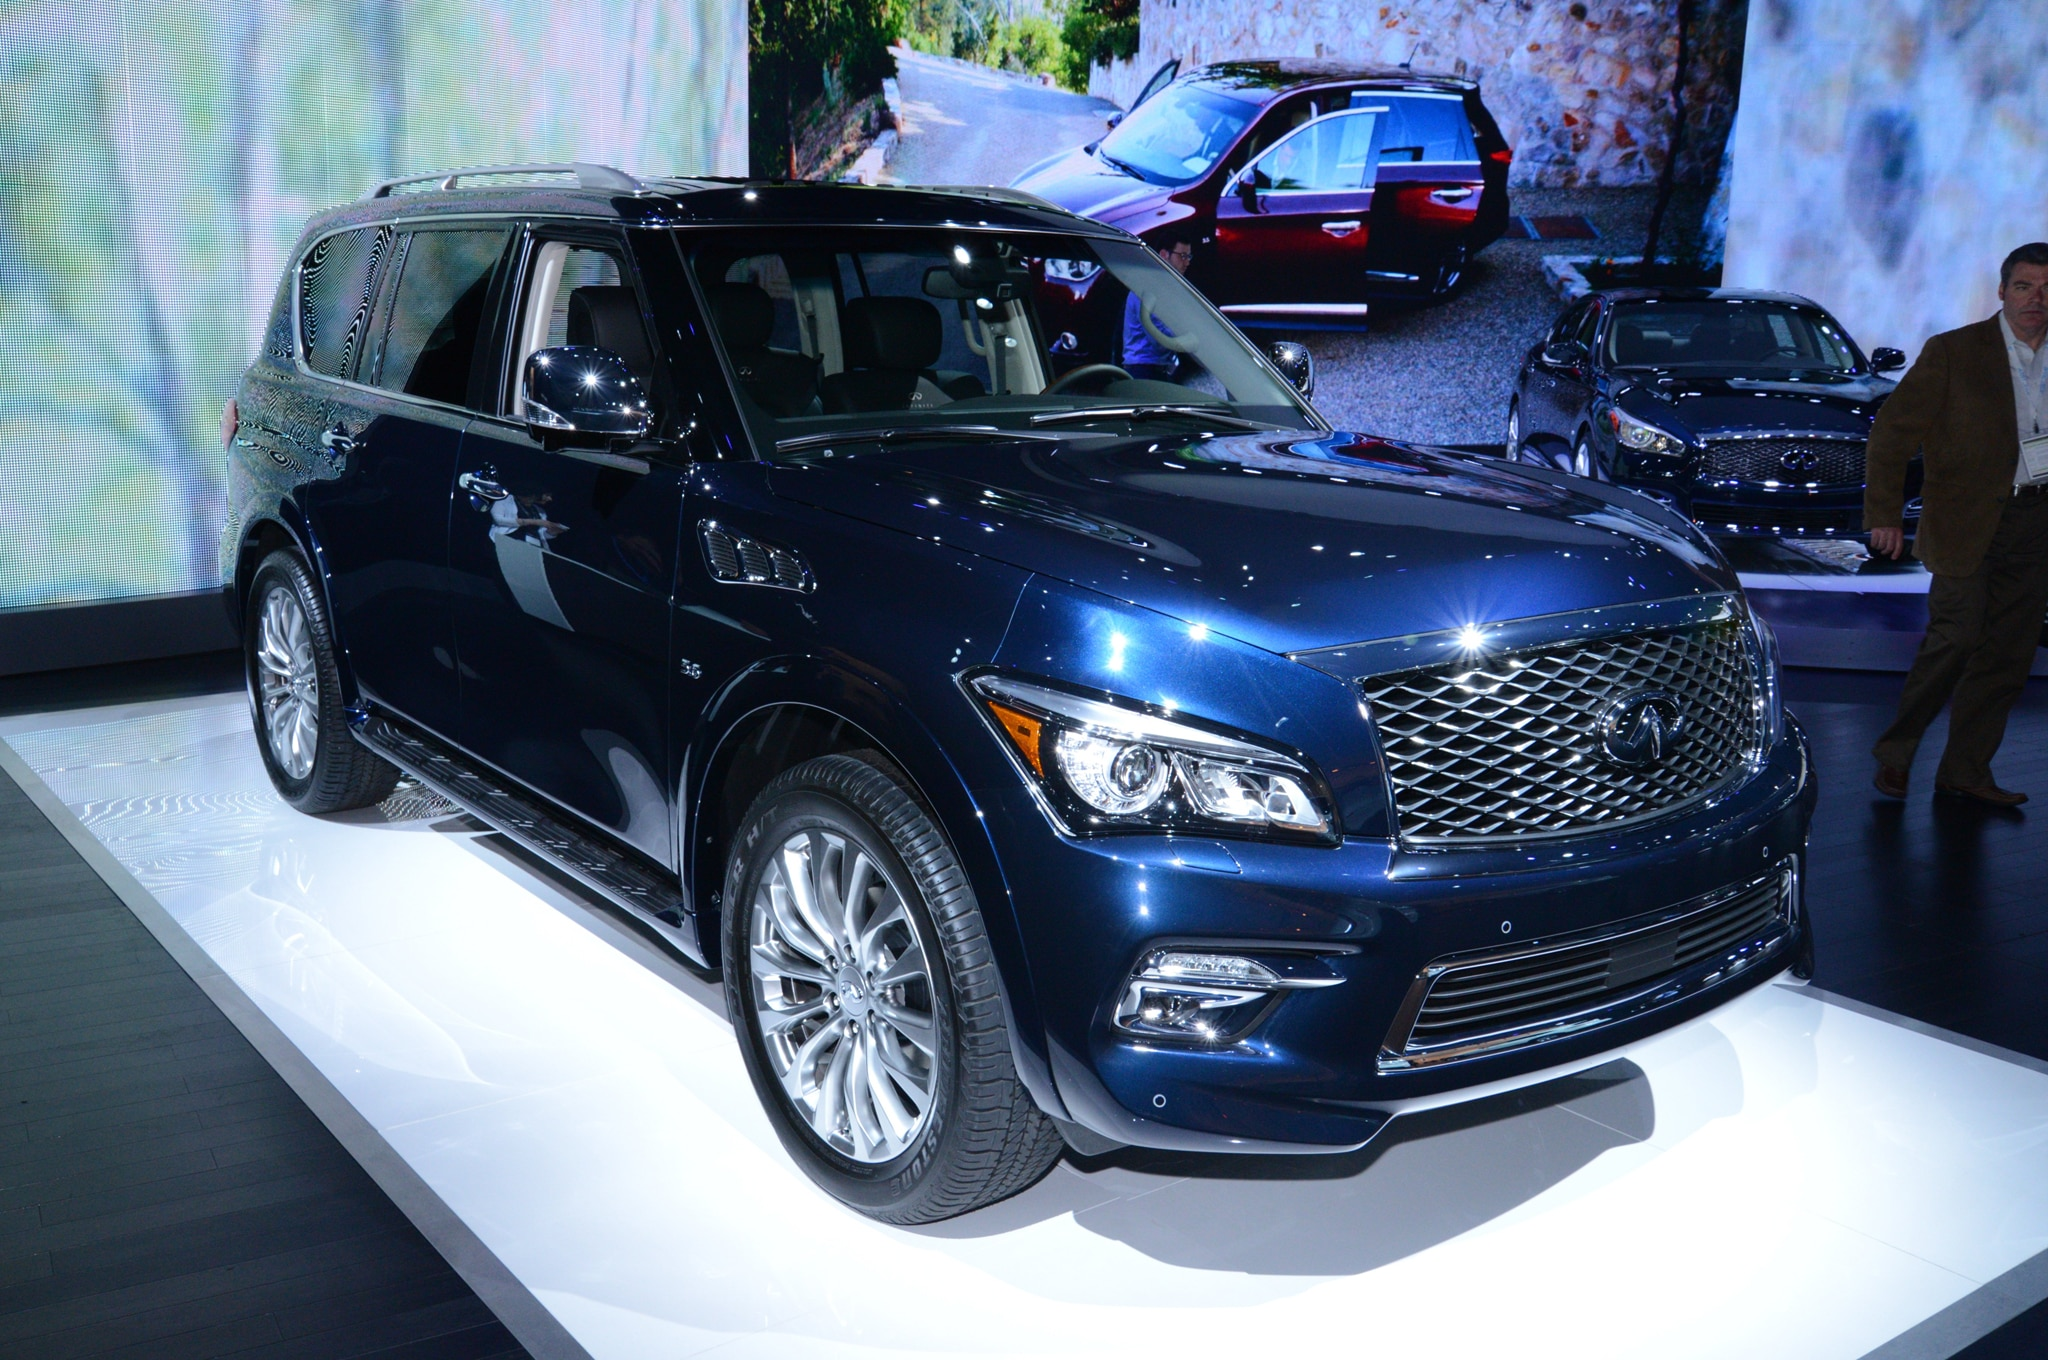 2015 Infiniti QX80 Front View1